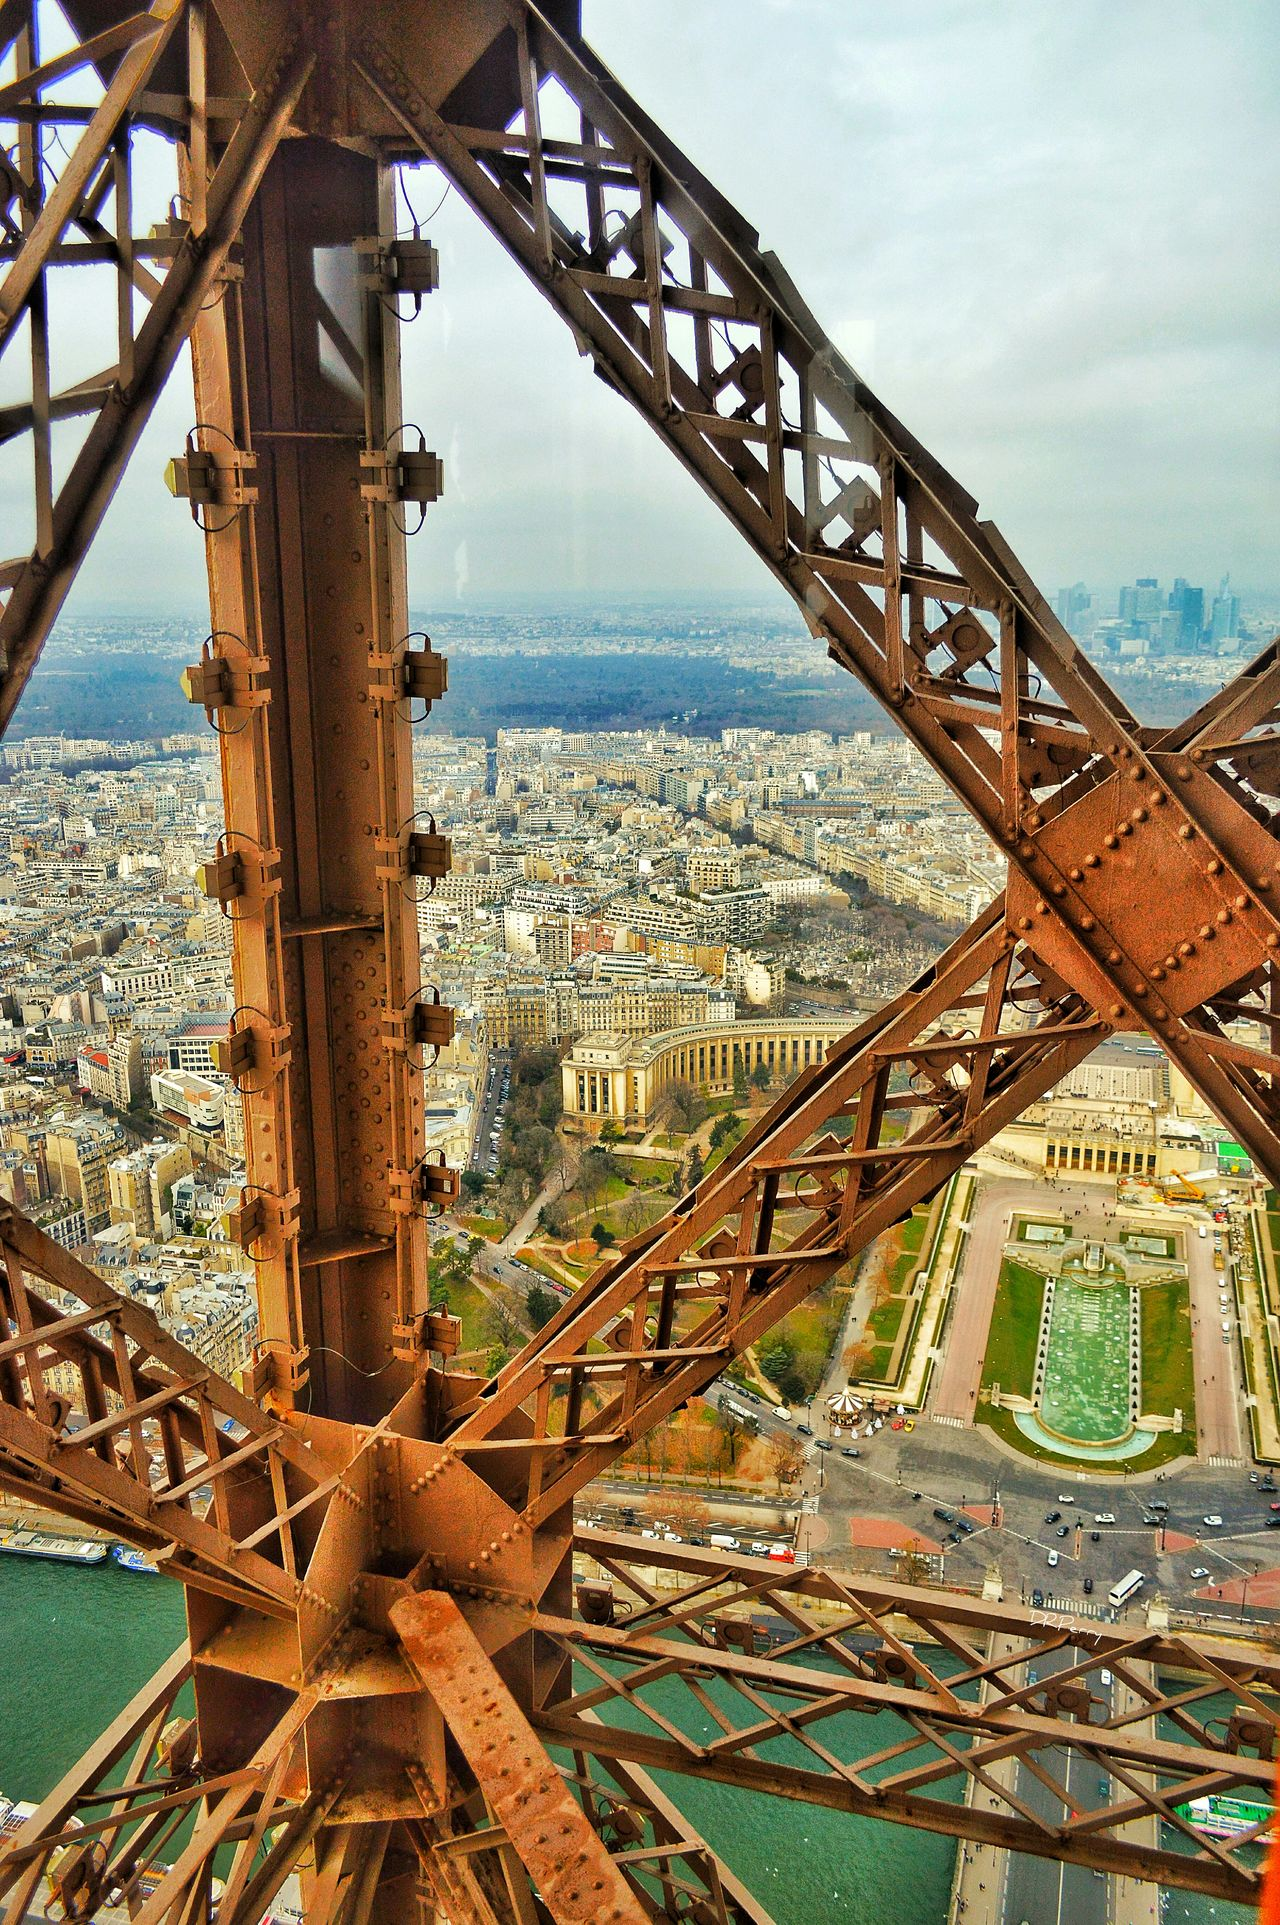 """Sky Art"" - Paris Paris Photobydperry Eiffel Tower France Architectural Feature Architecture ParisianLifestyle Famous Place Travel Outdoors Cityscape Arial View Birdseye View Girders Beams And Girders City No People Travel Destinations Built Structure"